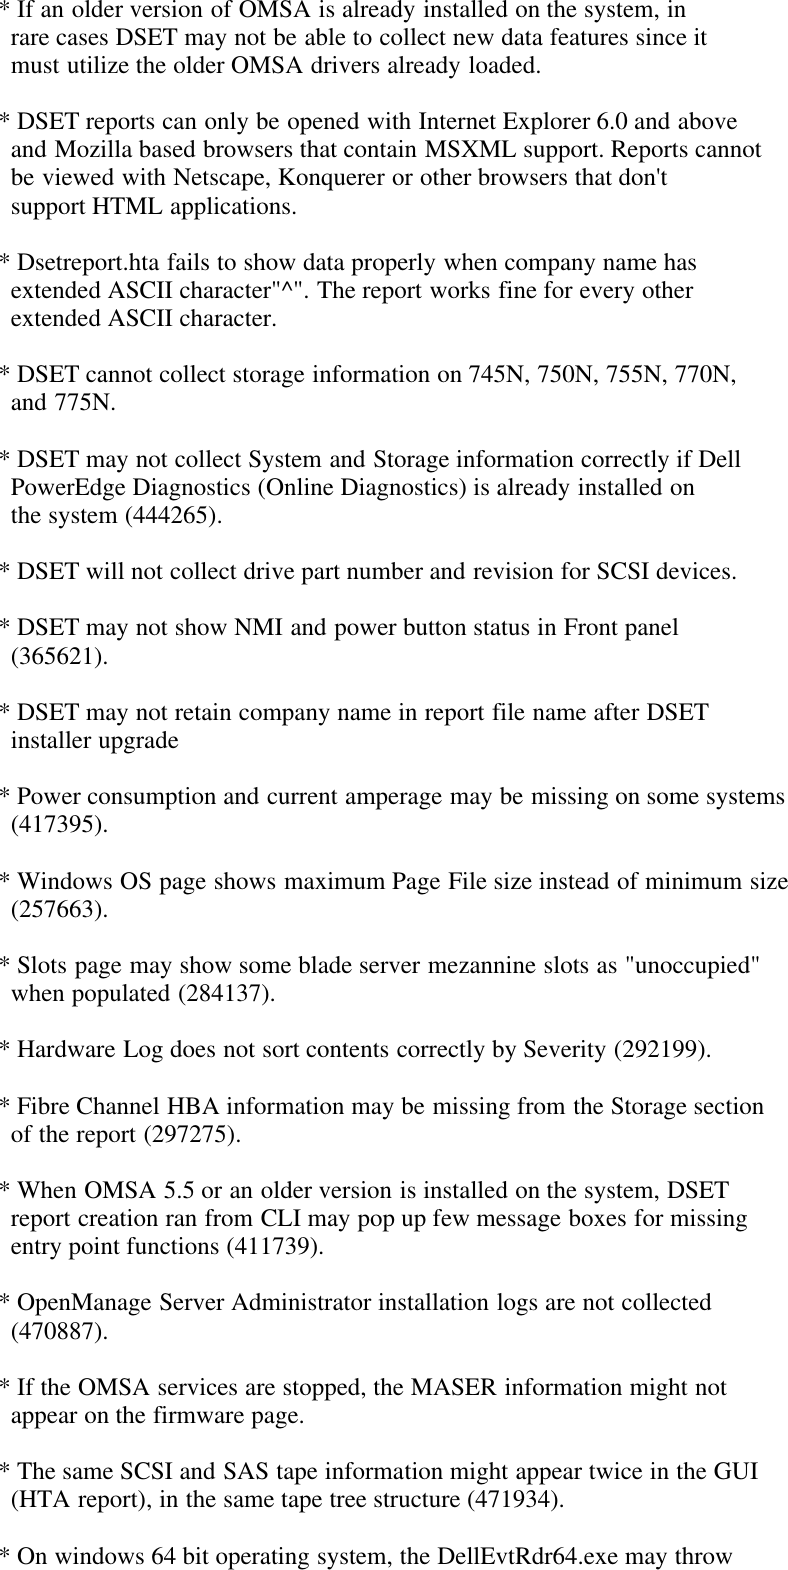 Dell System E Support Tool Version 2 Owners Manual 2 2 Readme